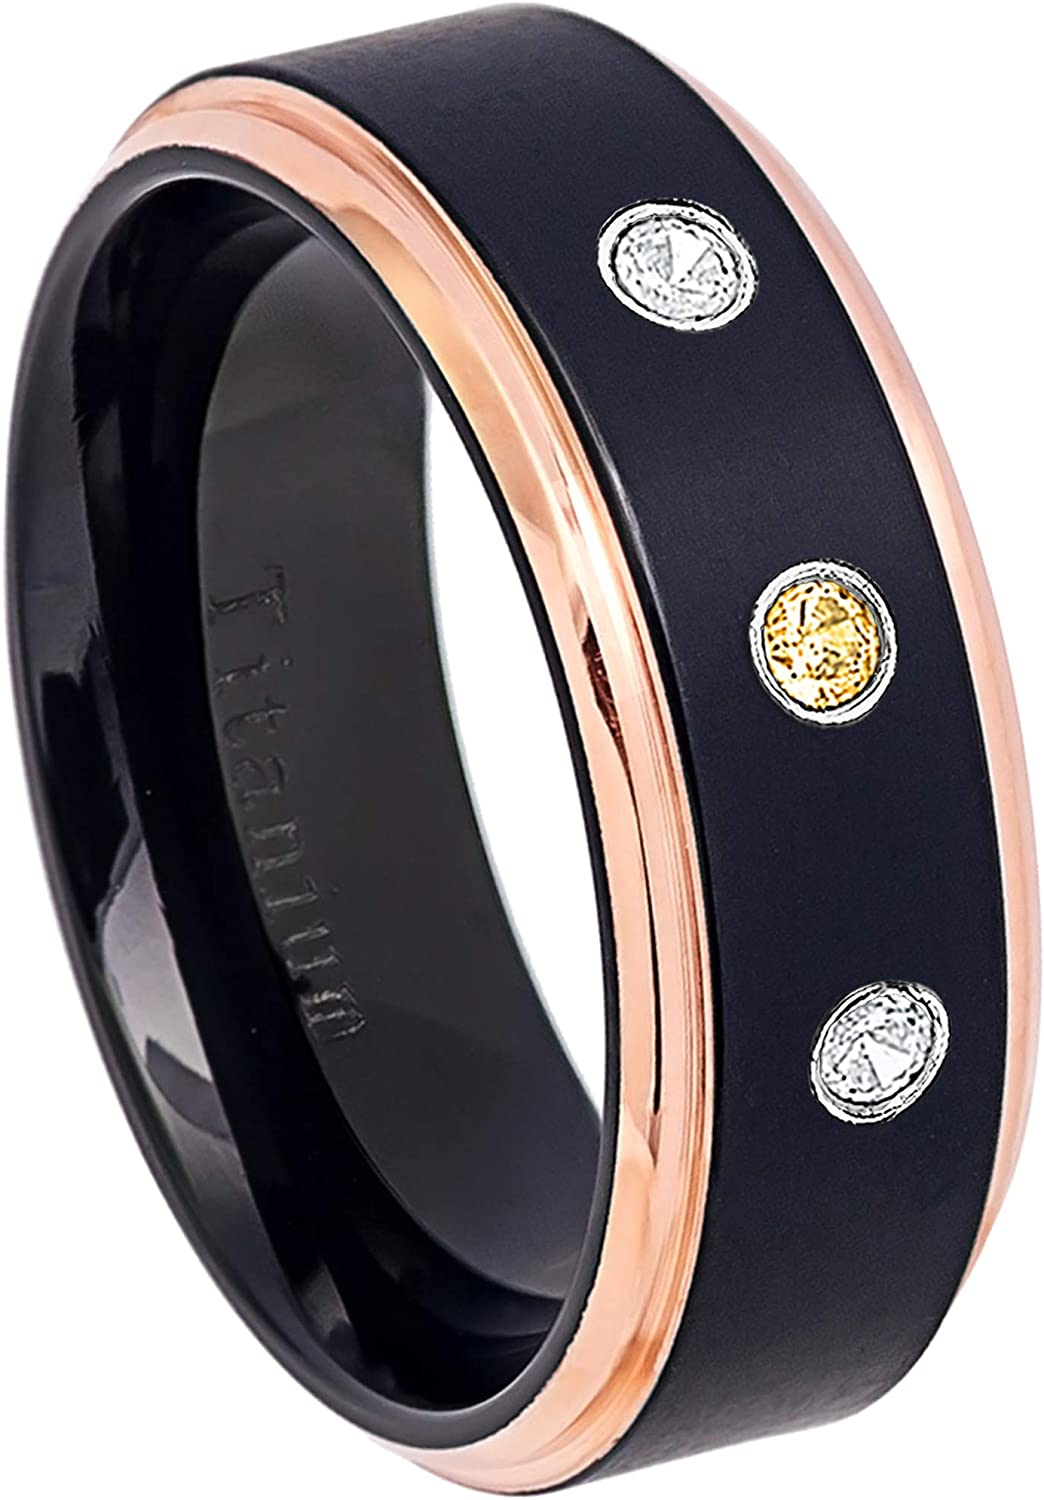 0.21ctw Citrine /& Diamond 3-Stone Titanium Ring 8MM Black Ion Plated /& Rose Gold Plated Stepped Edge Comfort Fit Wedding Band